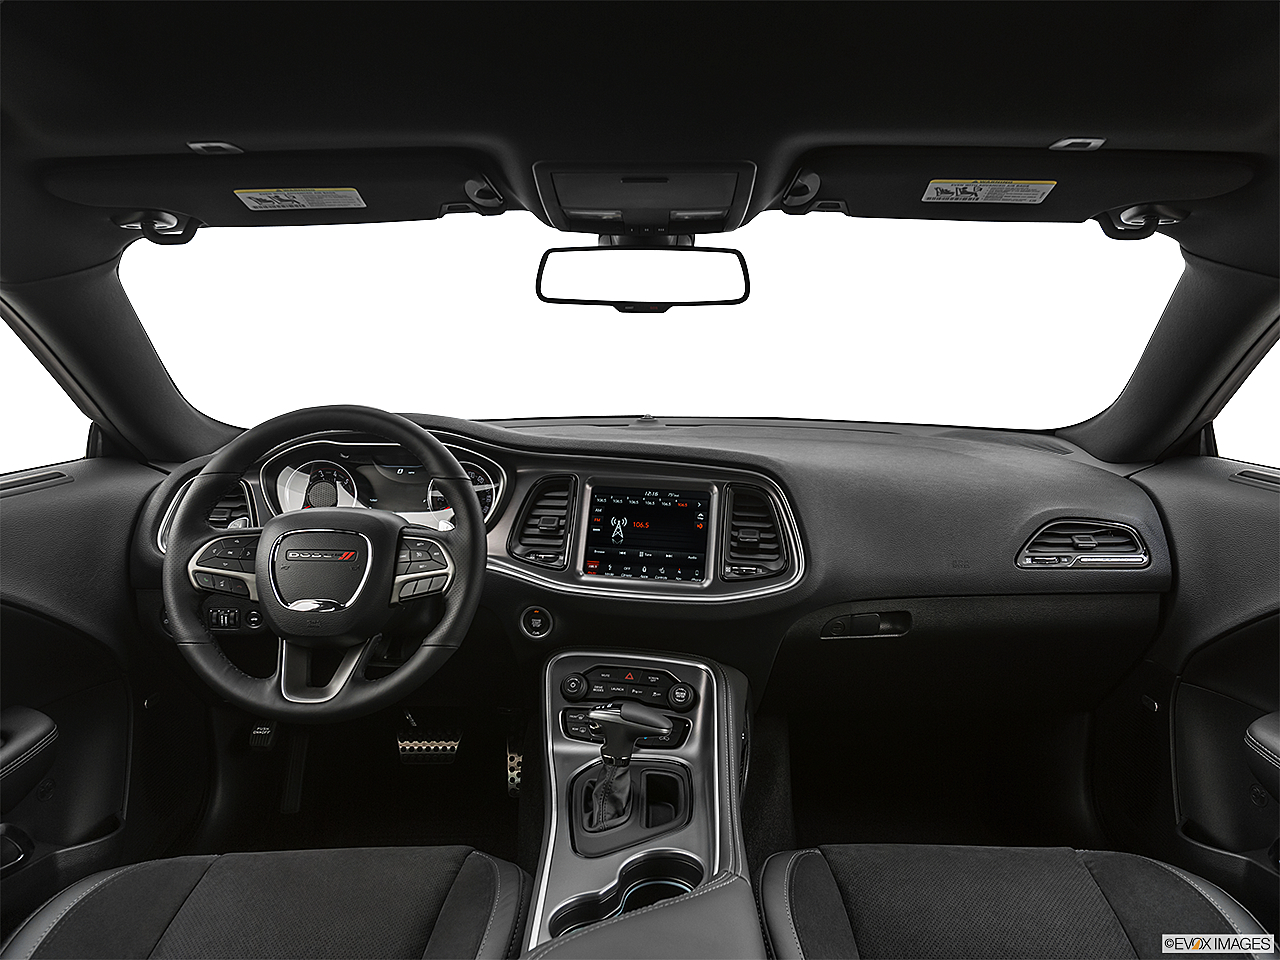 2019 Dodge Challenger R/T Scat Pack, centered wide dash shot